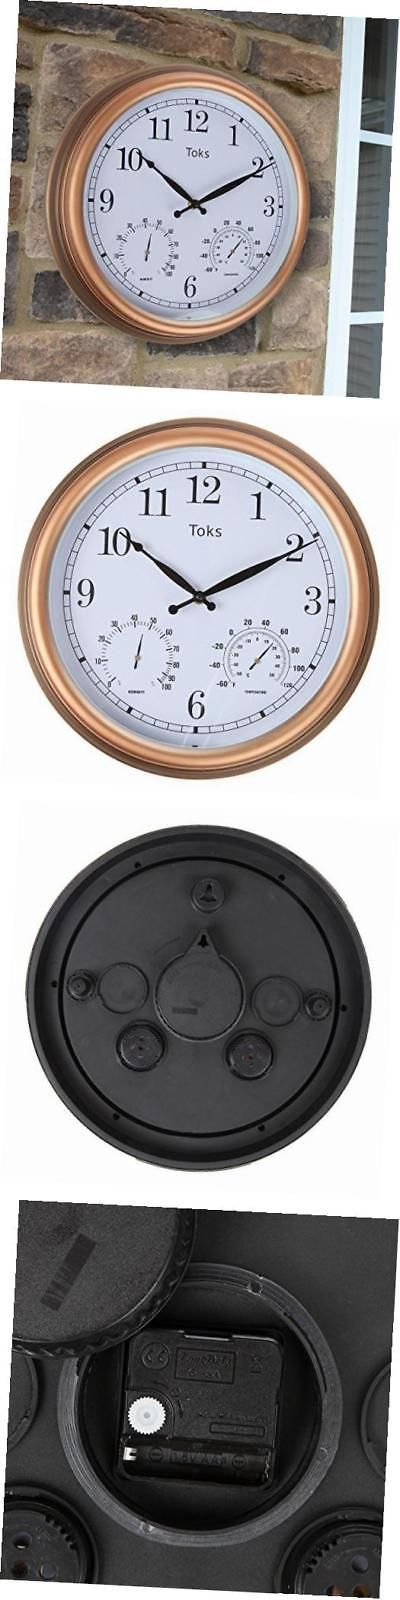 Outdoor Thermometers 75601: 3-In-1 Indoor Or Outdoor Wall Clock With Thermometer And Hygrometer - 15-Inch, -> BUY IT NOW ONLY: $38.85 on eBay!